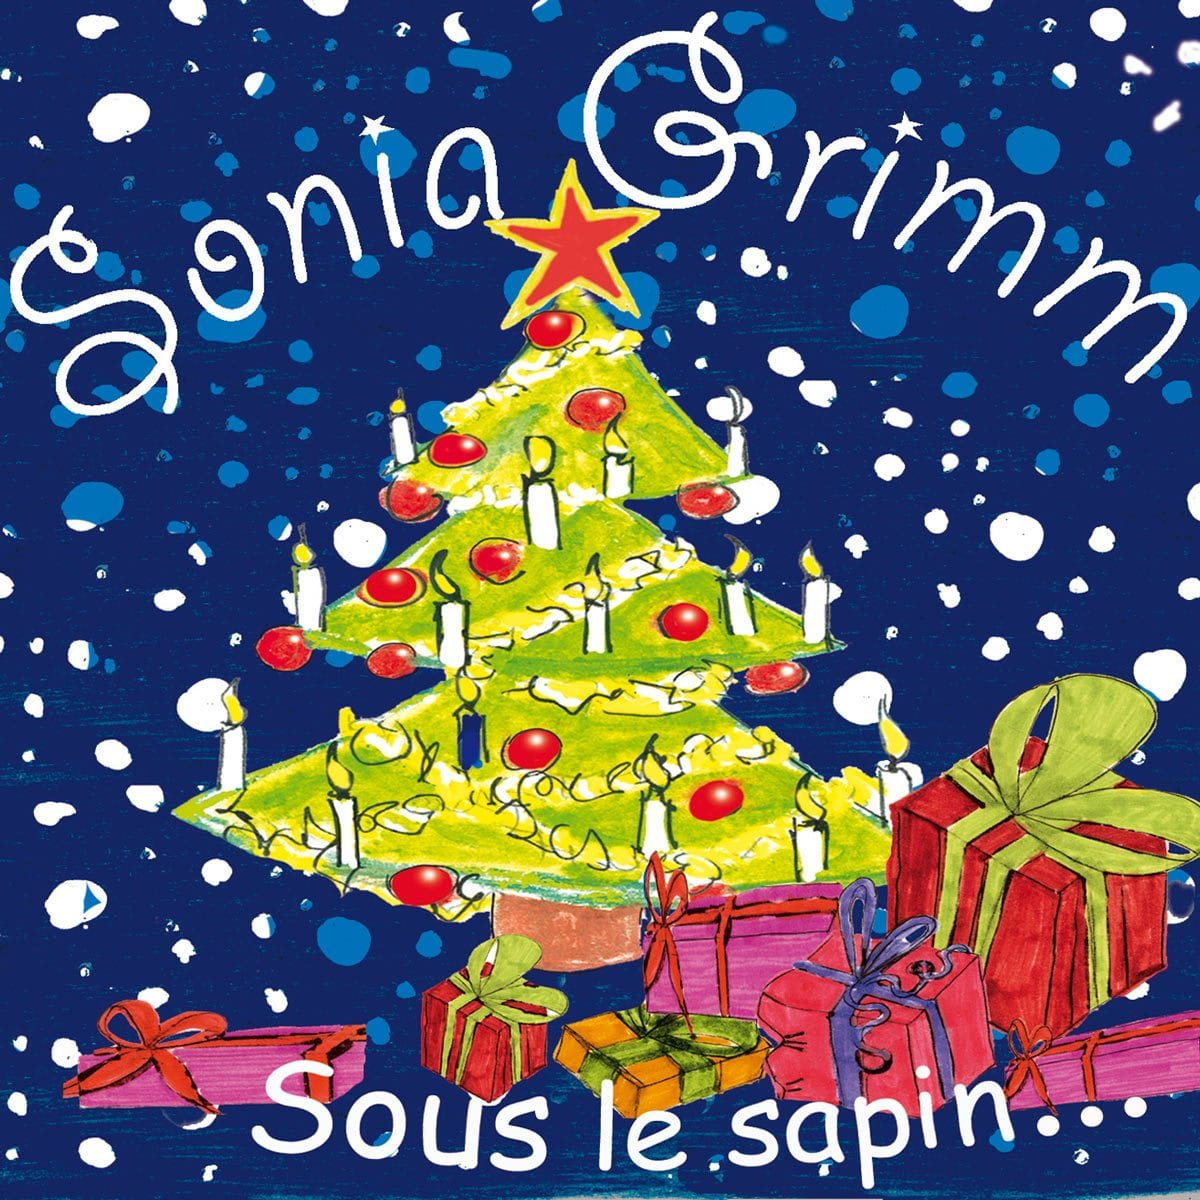 Sous-le-sapin_Sonia-Grimm